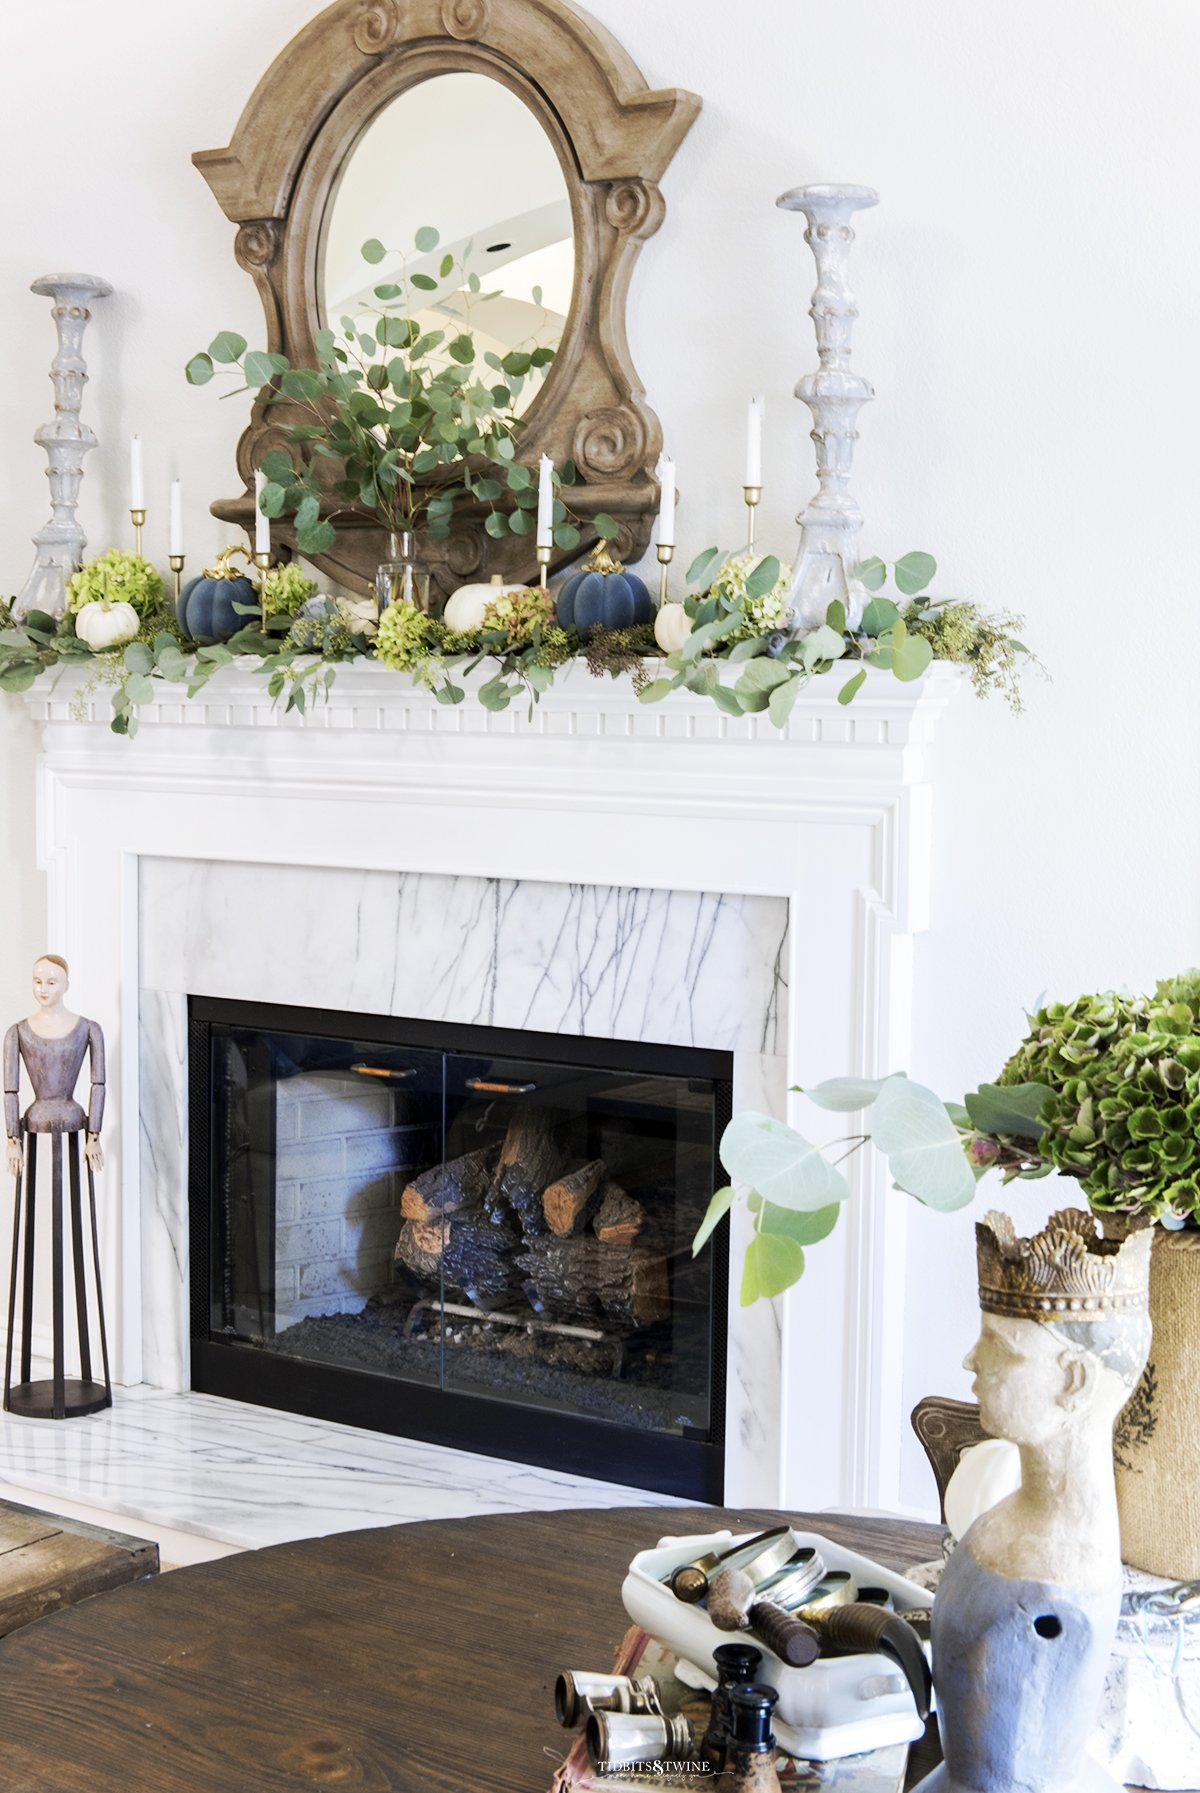 White fireplace mantel with French mirror above and eucalyptus and white pumpkins on top